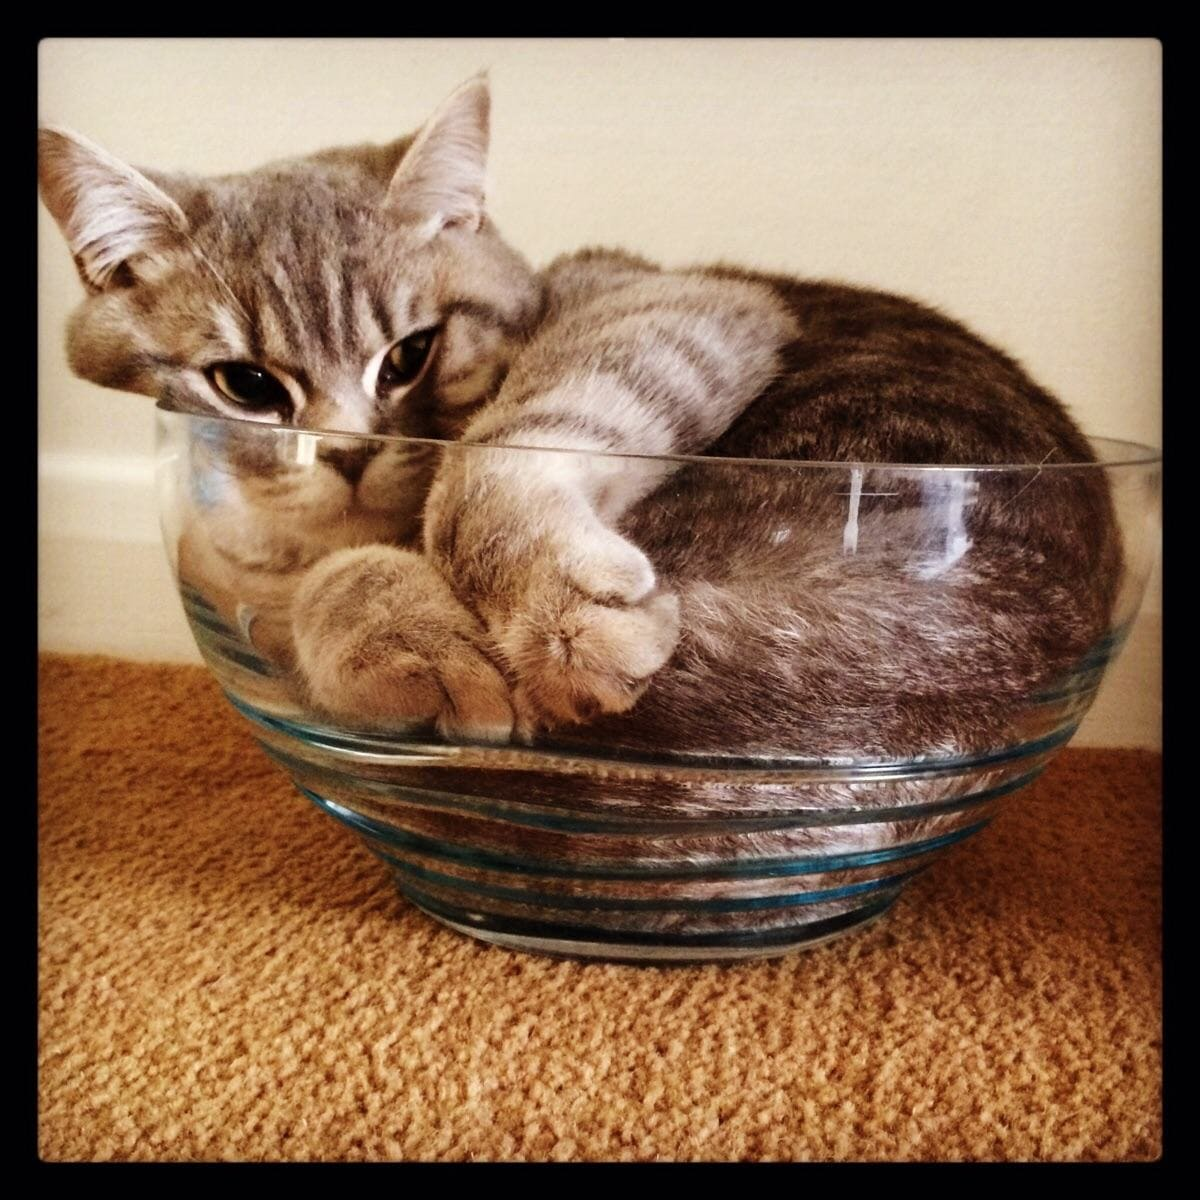 adorable cat in small bowl if i fits i sits, if i fits i sits, if i fit i sit, if it fits i sits, if i fits i sits cat, if i fit i sit cat, if it fits i sits cats, cats if i fits i sits, cat meme if it fits i sits, cat if i fits i sits, cat if it fits i sits, if i fit i sit picture, if i fits i sits picture, if i fits i sits pictures, if i fit i sit pictures, if i fits i sits image, if i fits i sits images, if i fit i sit image, if i fit i sit images, cats fitting and sitting, cats if i fits i sits picture, cats if i fits i sits pictures, cats if i fits i sits image, cats if i fits i sits images